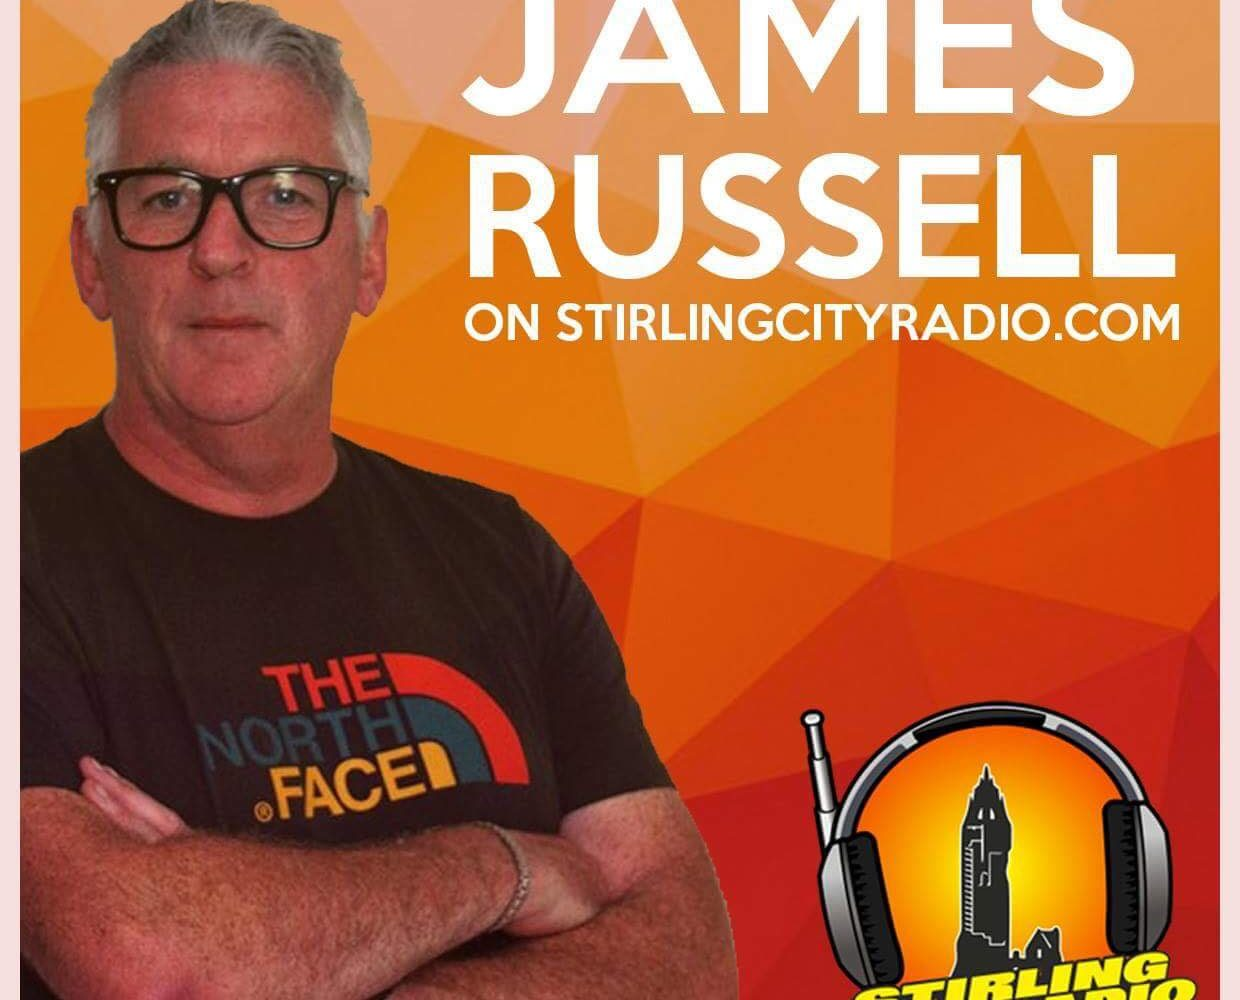 Interview with James Russell from Stirling City Radio